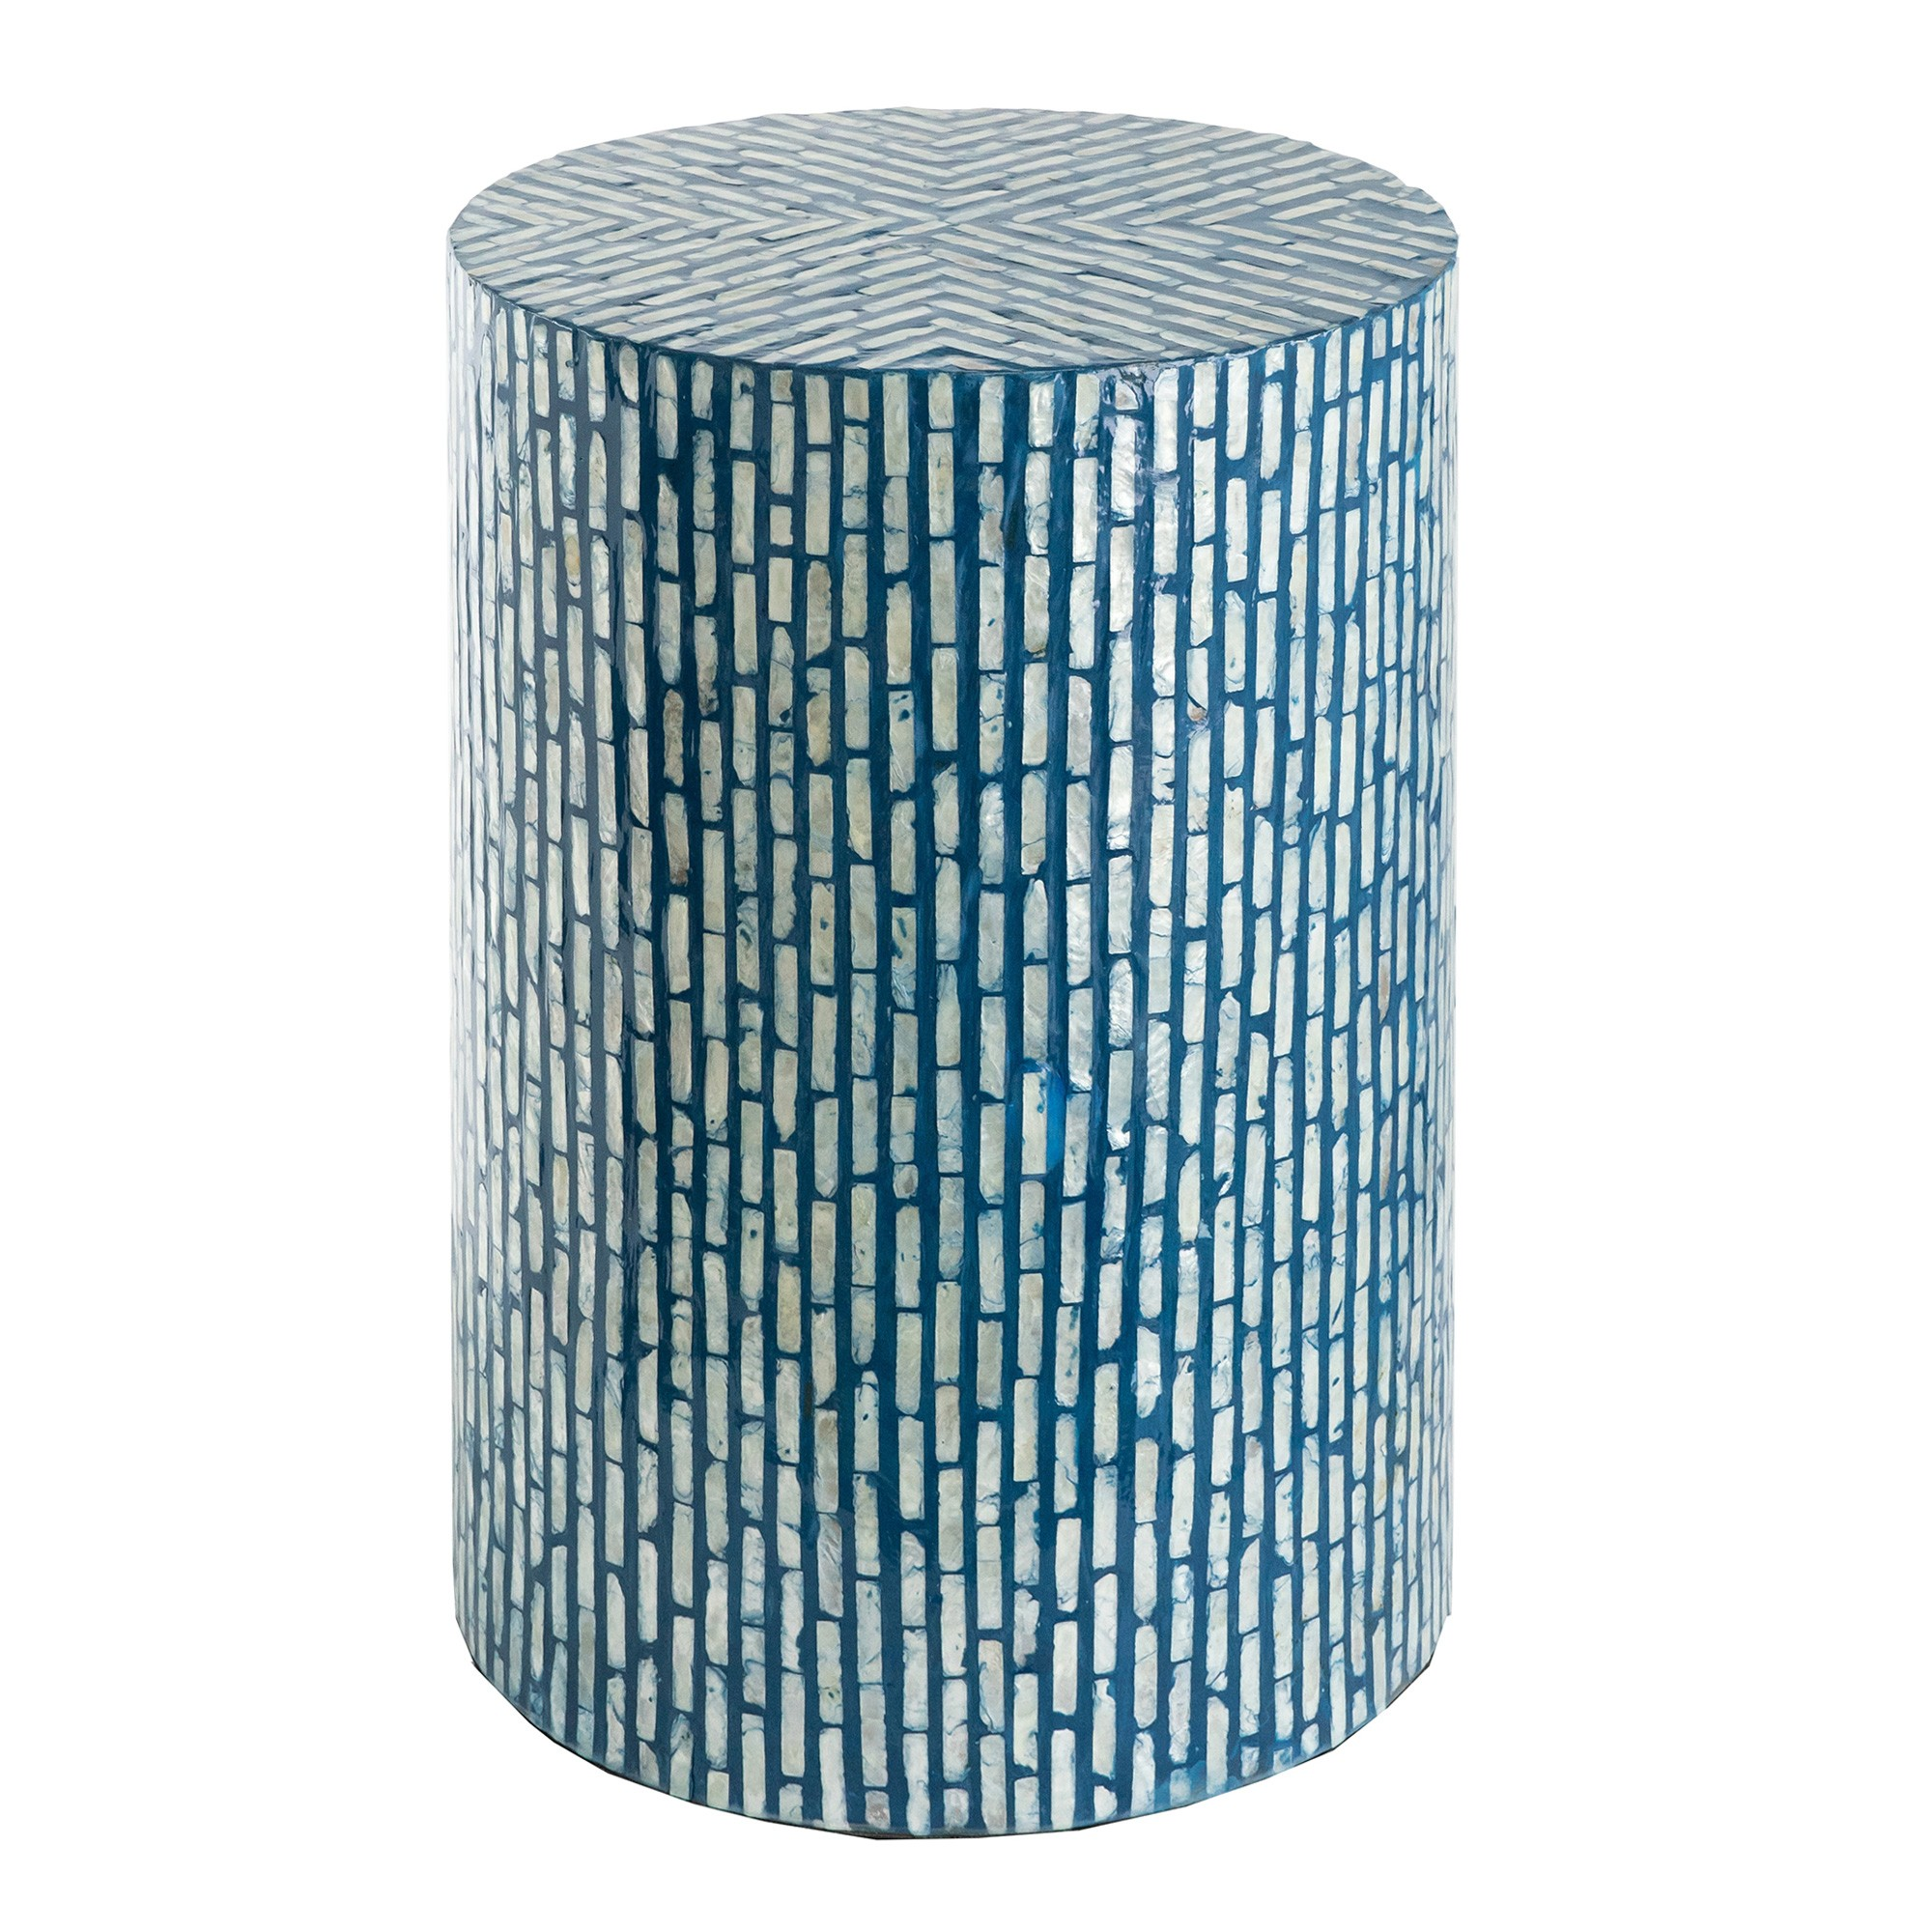 Gaidel Seashell Inlay Round Accent Stool / Side Table